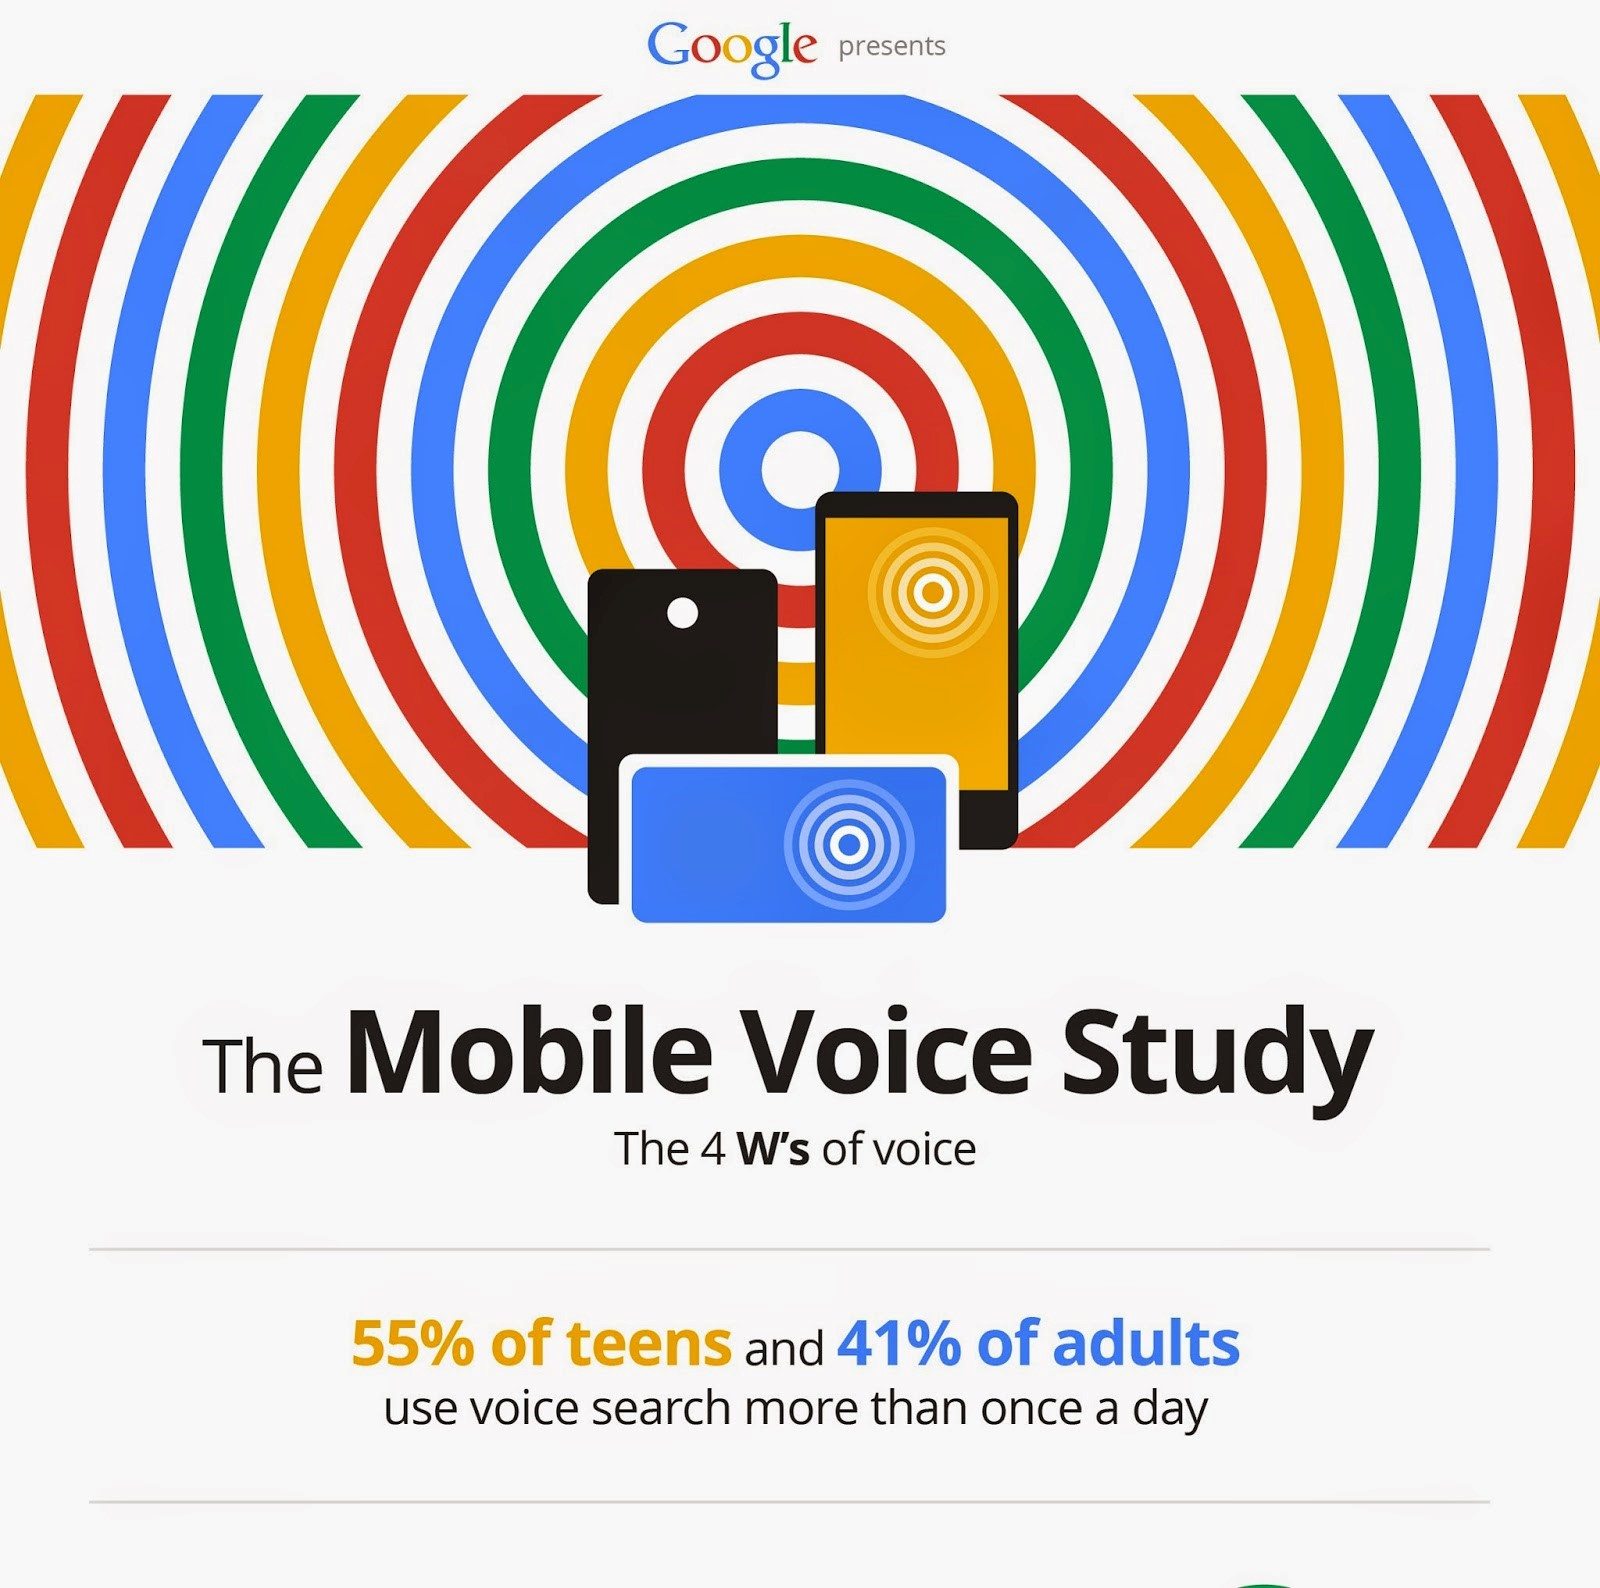 Google's Mobile Voice Study on voice search